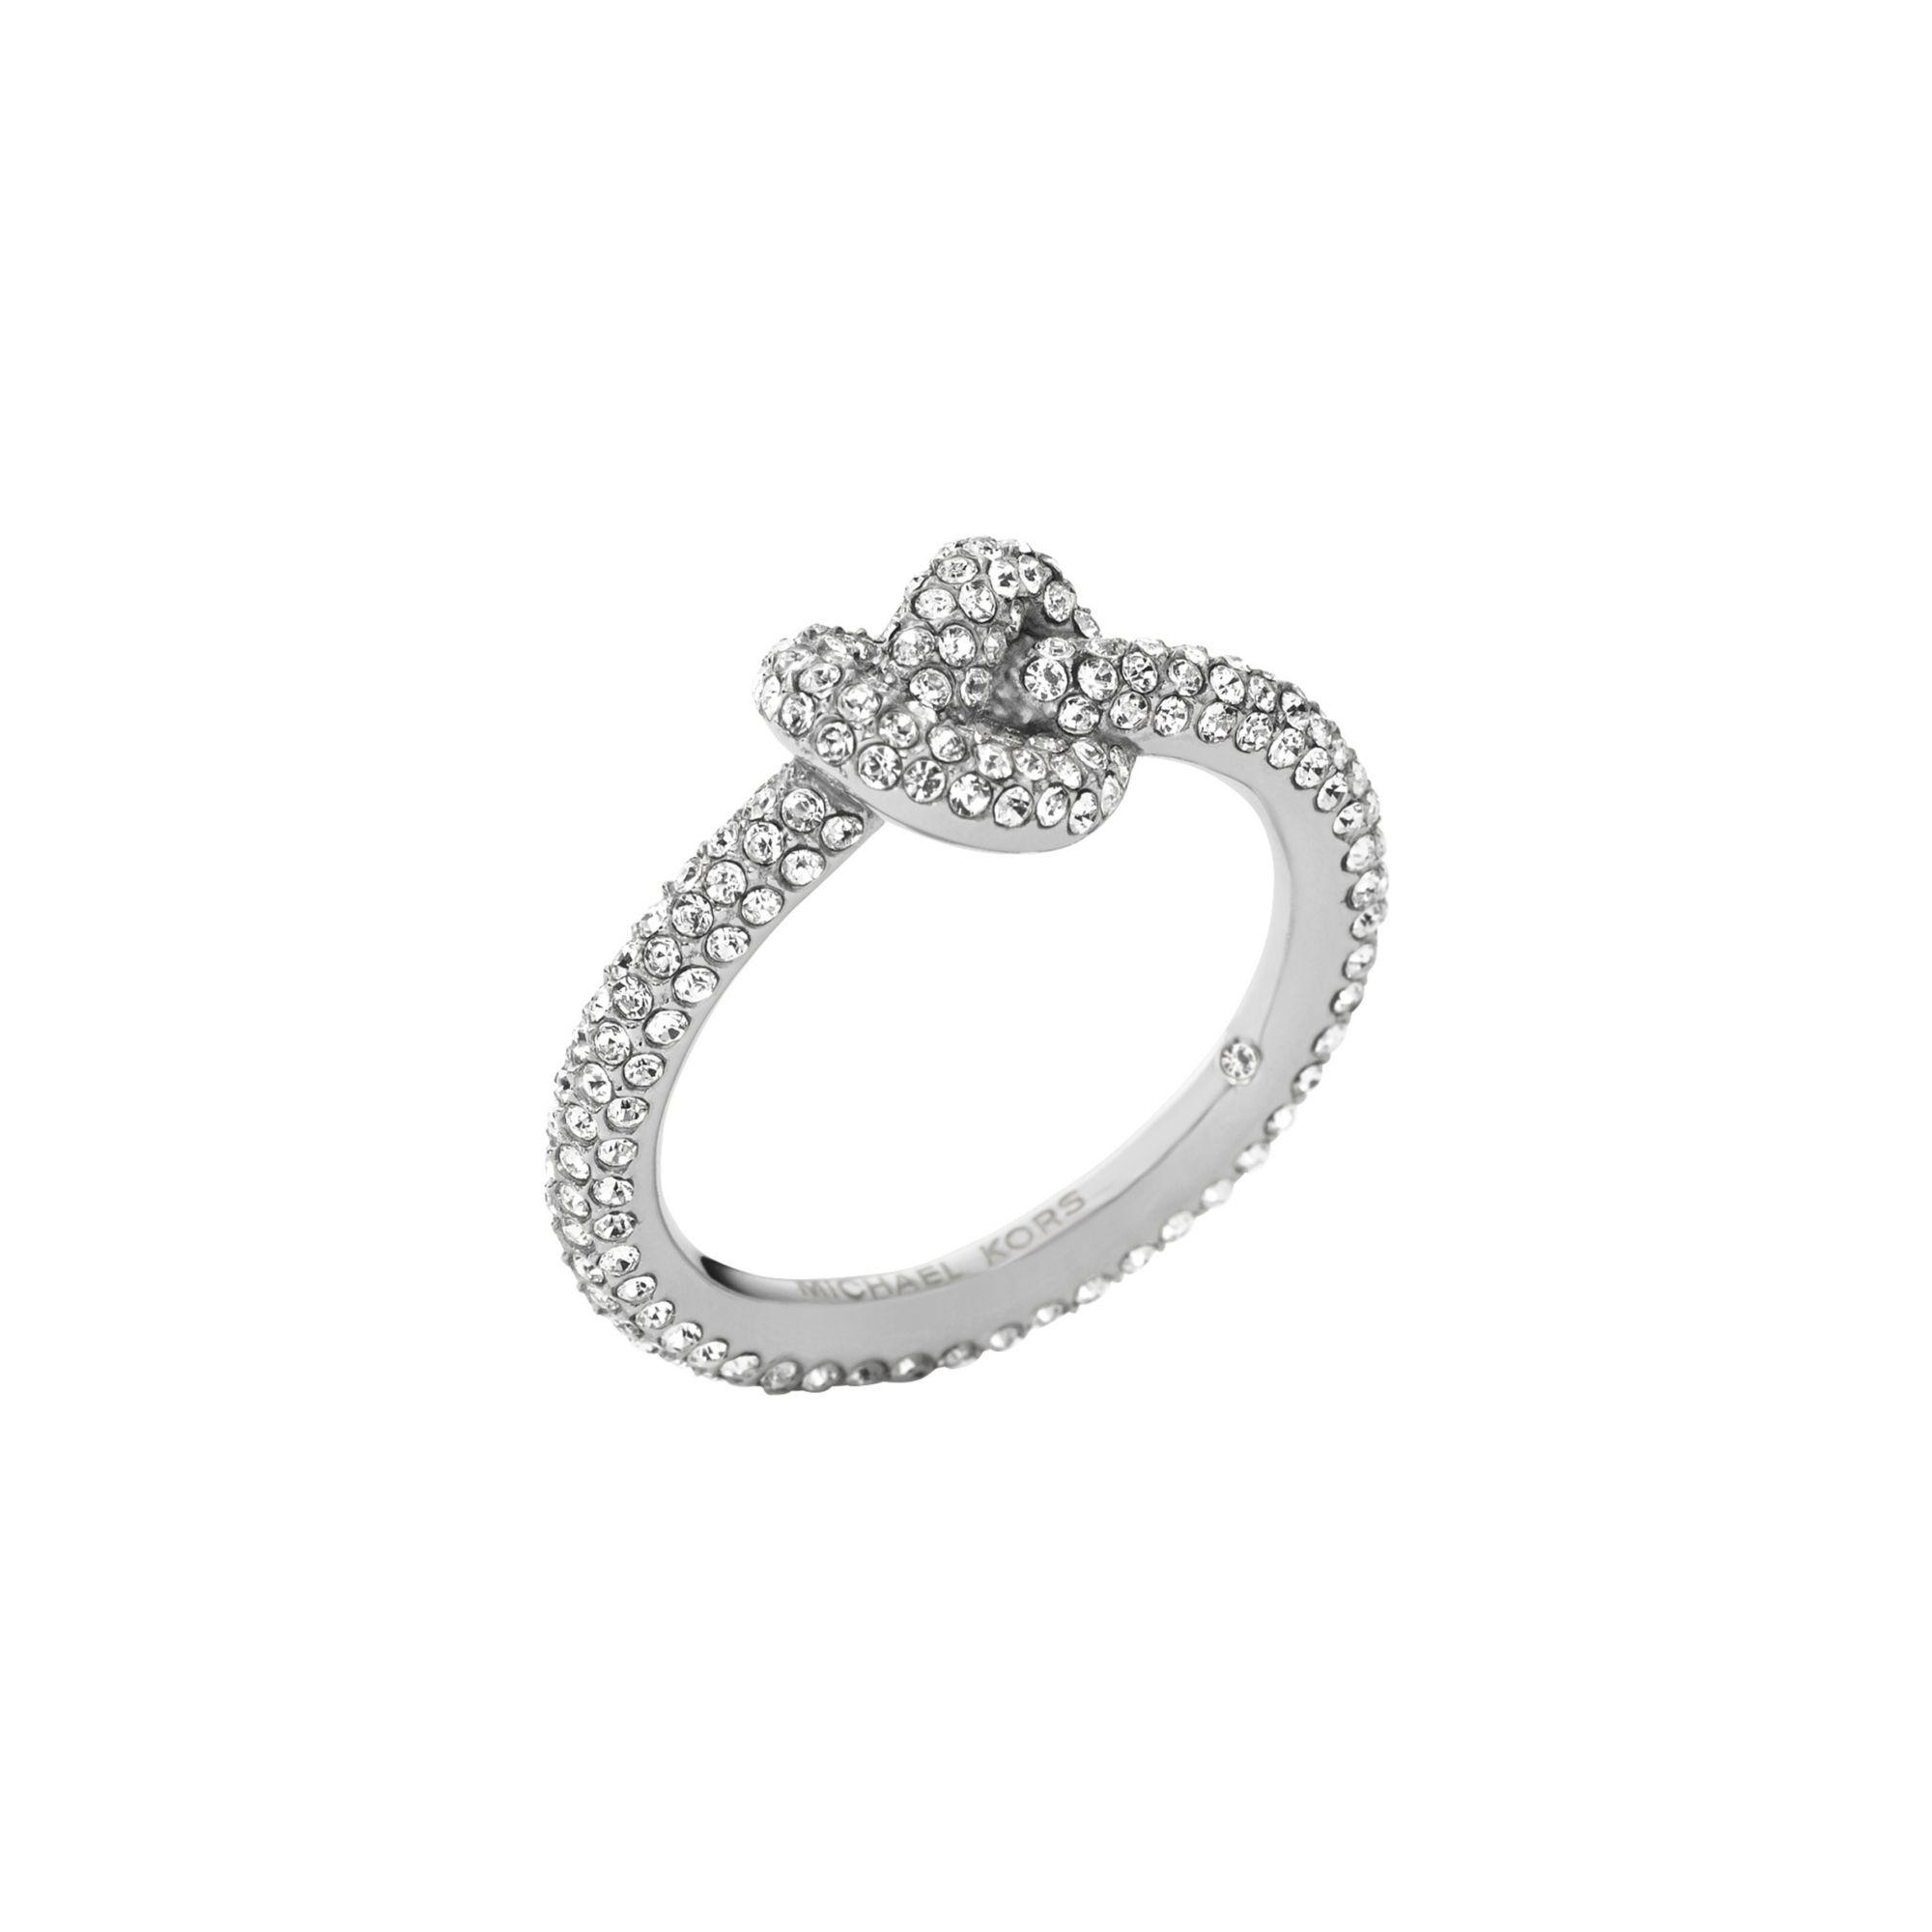 ring knot eternity cz engagement pave jewelry silver bling infinity love diamond yc band sterling